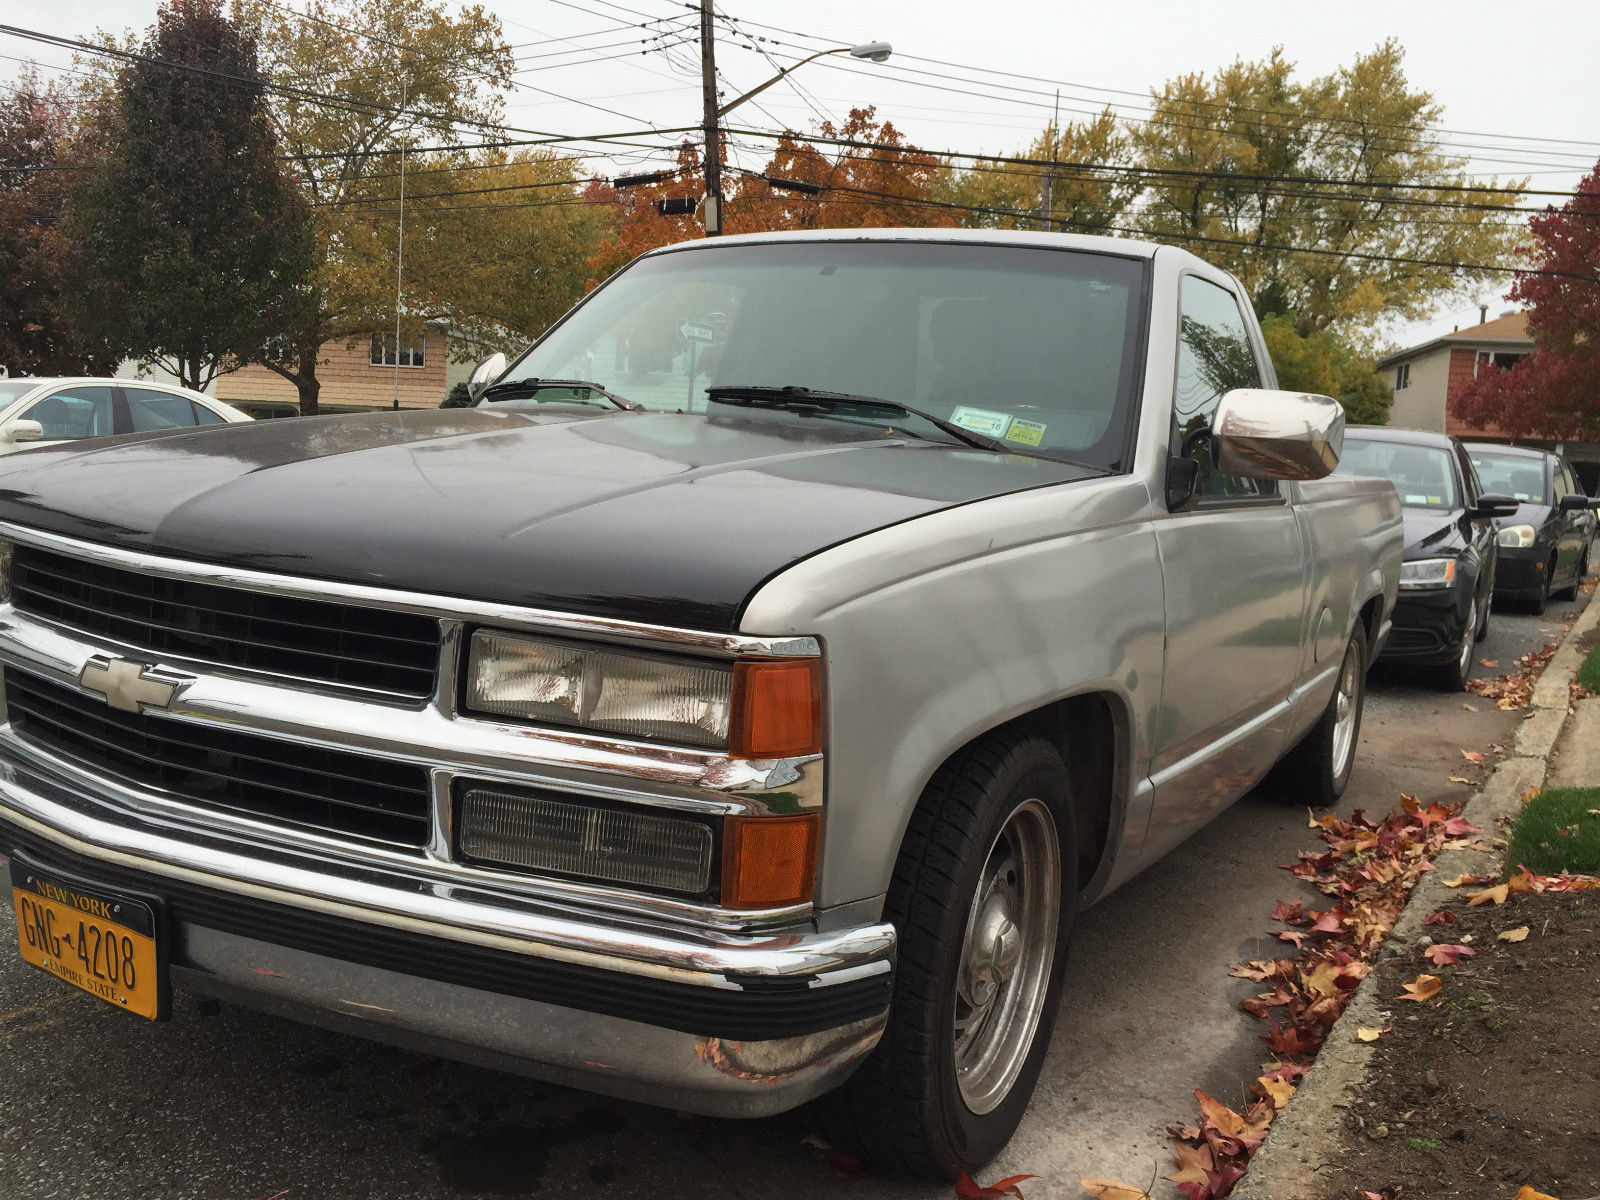 1990 chevy c1500 lowered sport truck 2x4 no reserve. Black Bedroom Furniture Sets. Home Design Ideas